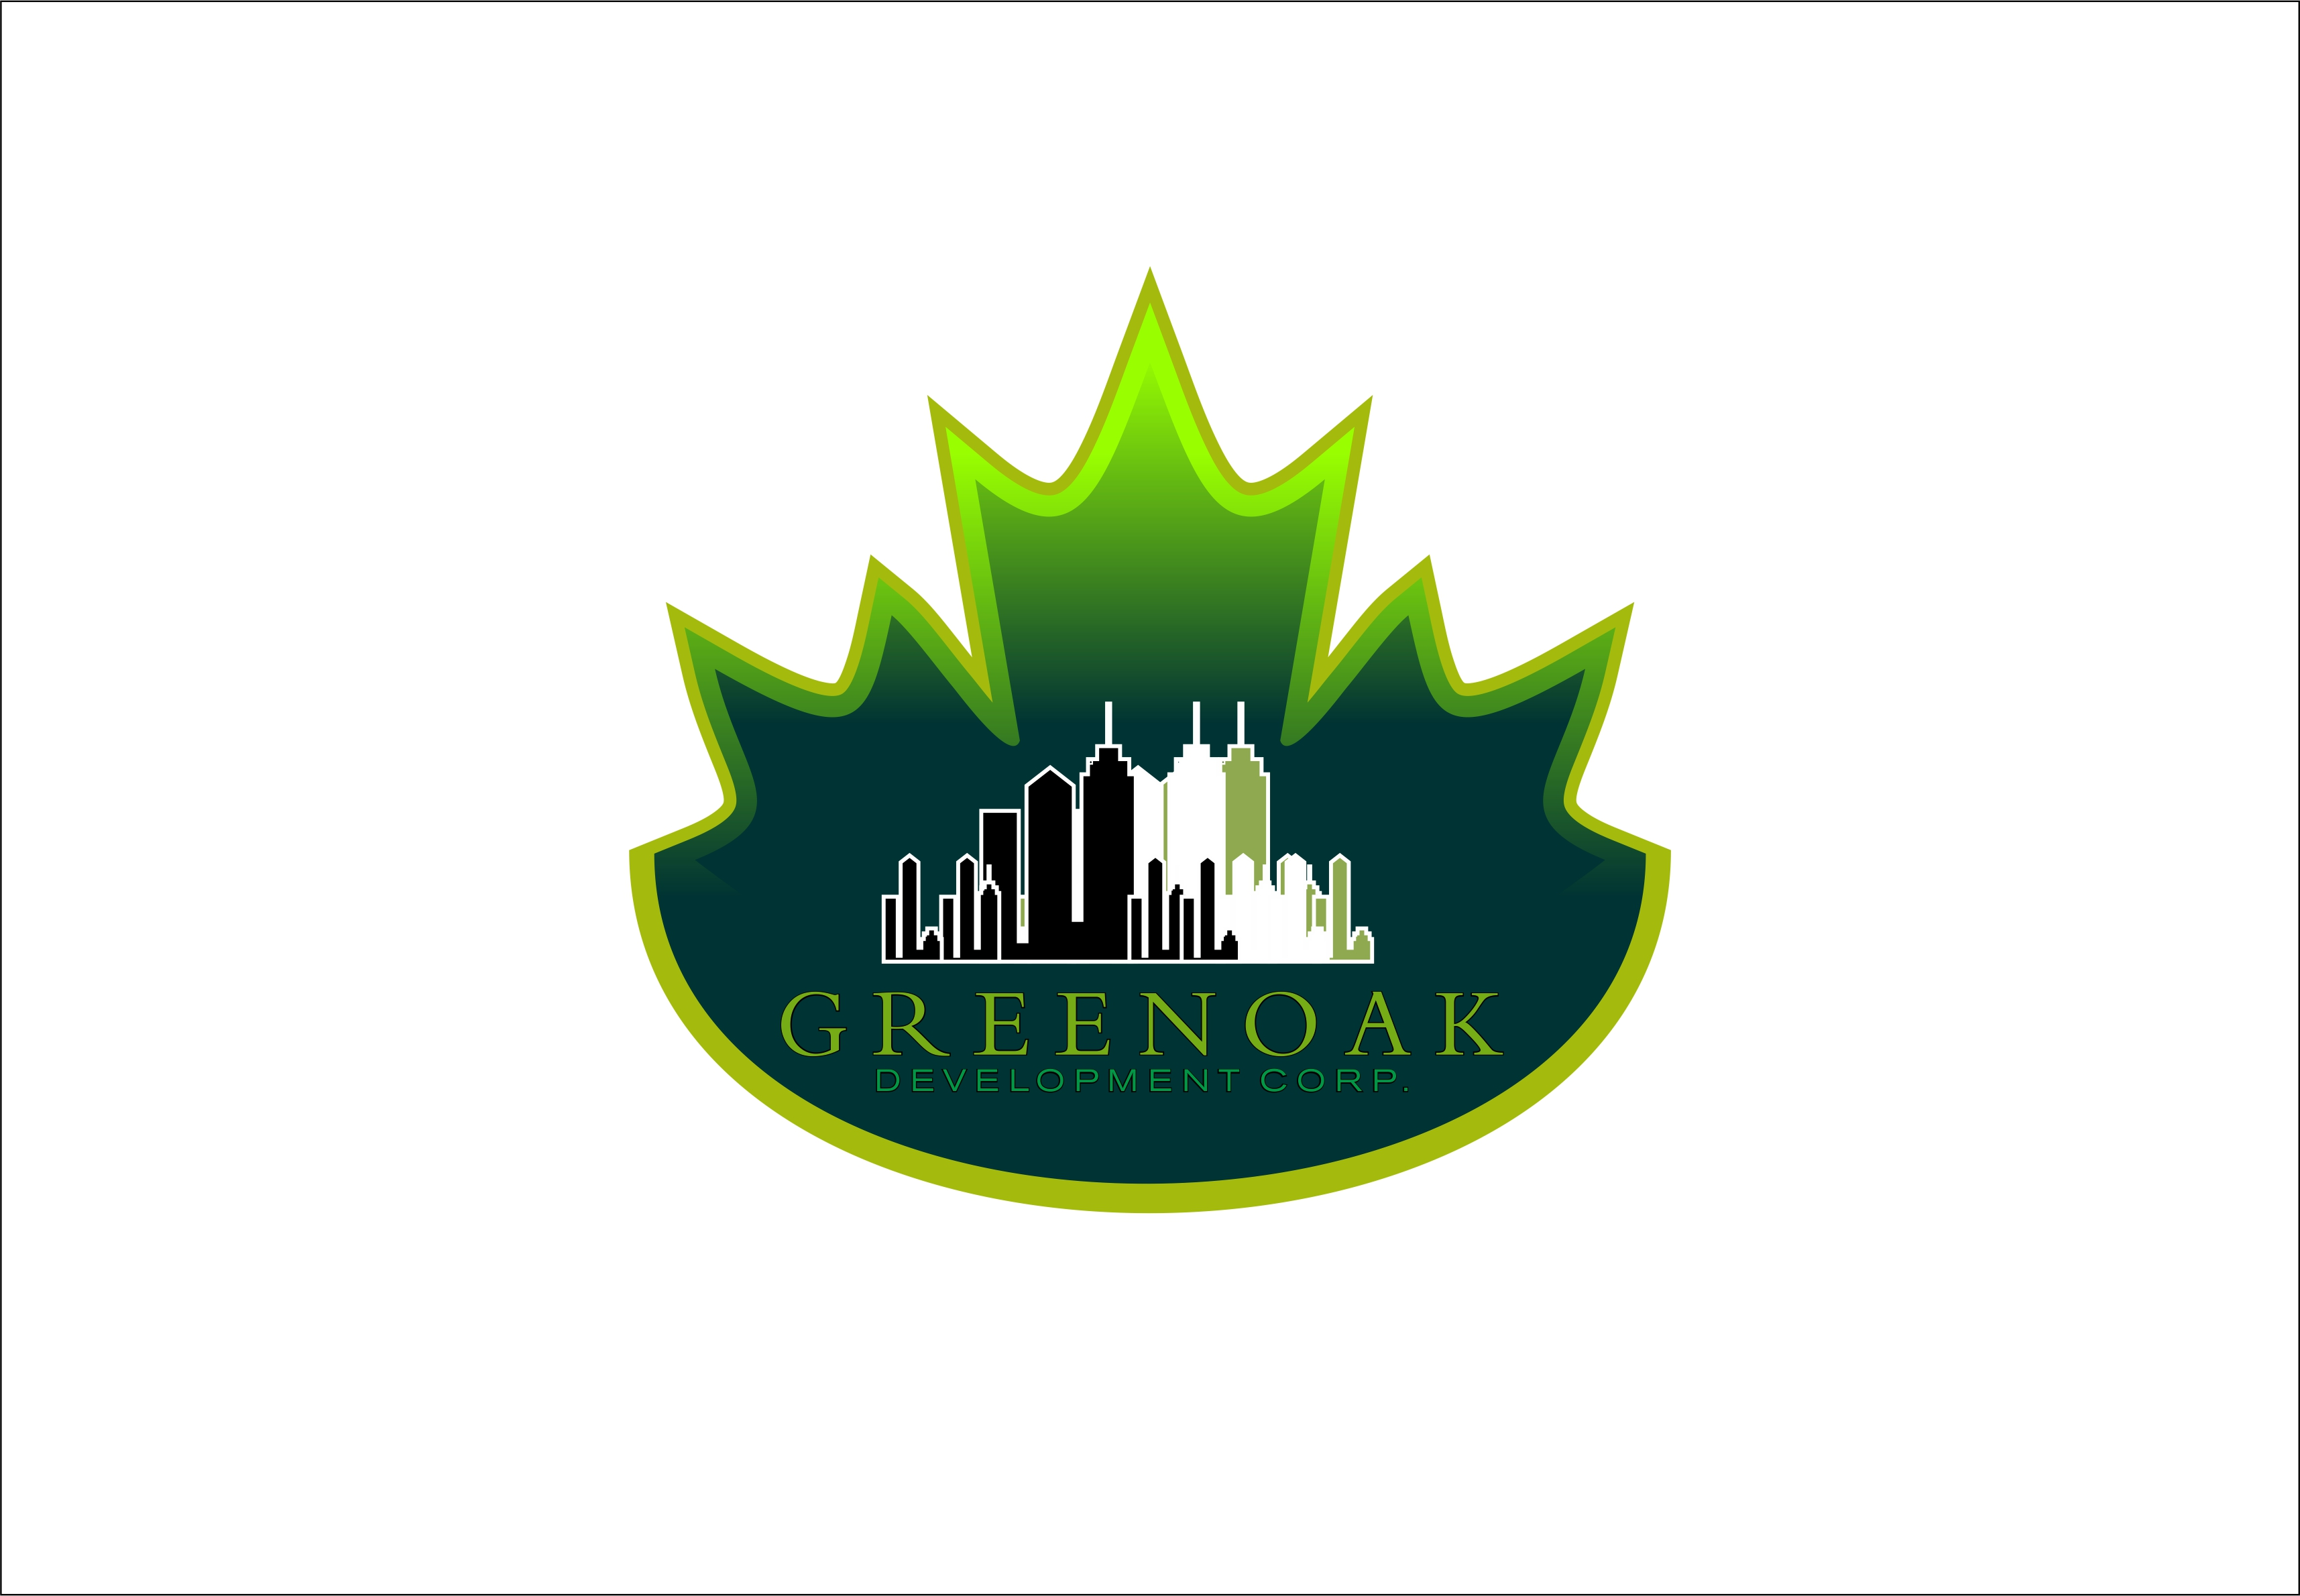 Logo Design by Fatih Ercan - Entry No. 101 in the Logo Design Contest Unique Logo Design Wanted for Green Oak Development Corp..